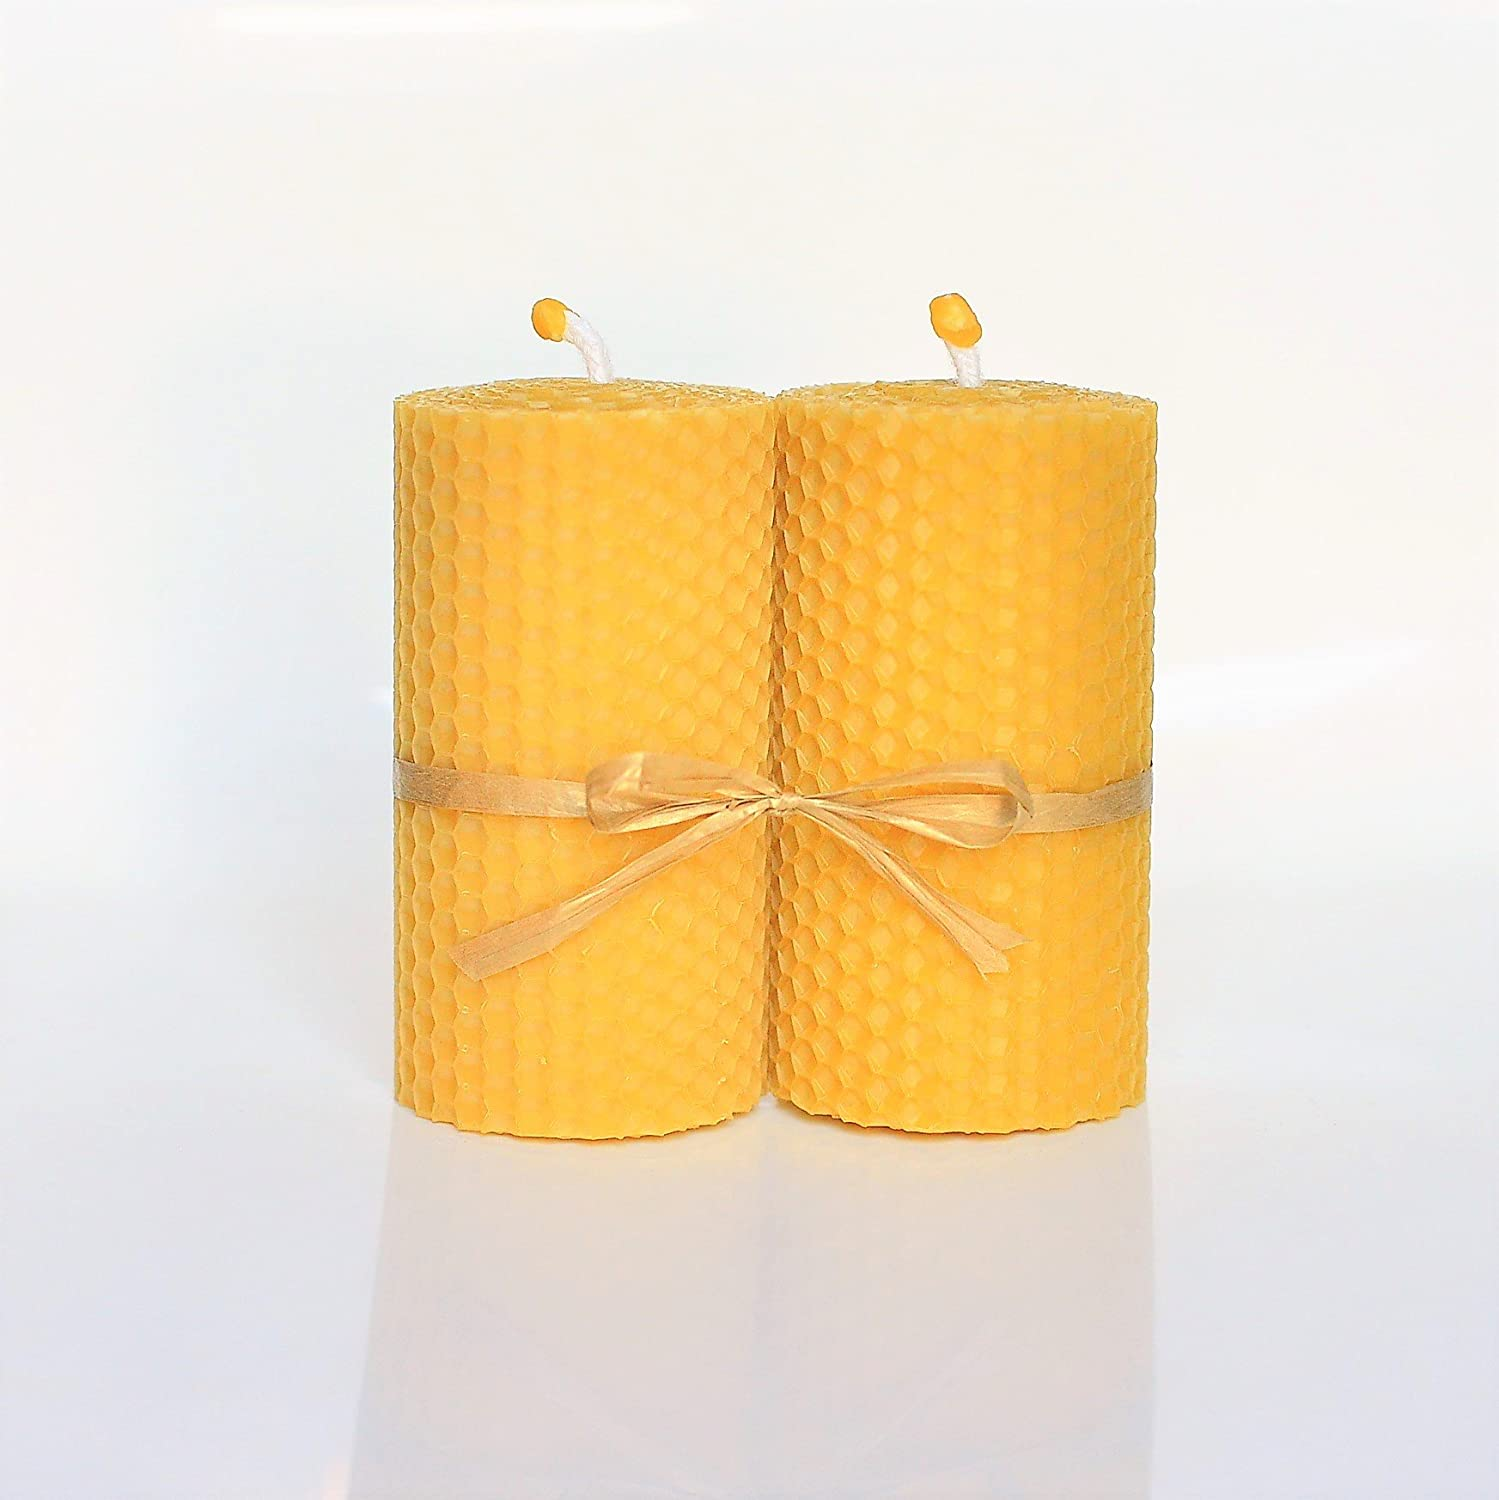 100% Pure Beeswax Candle Set of 2 Candles Size 4 inch x 2 inch Hand Rolled Decorated Natural Honey/Beeswax Scent 100% Handmade Eco Candle Honey Candles